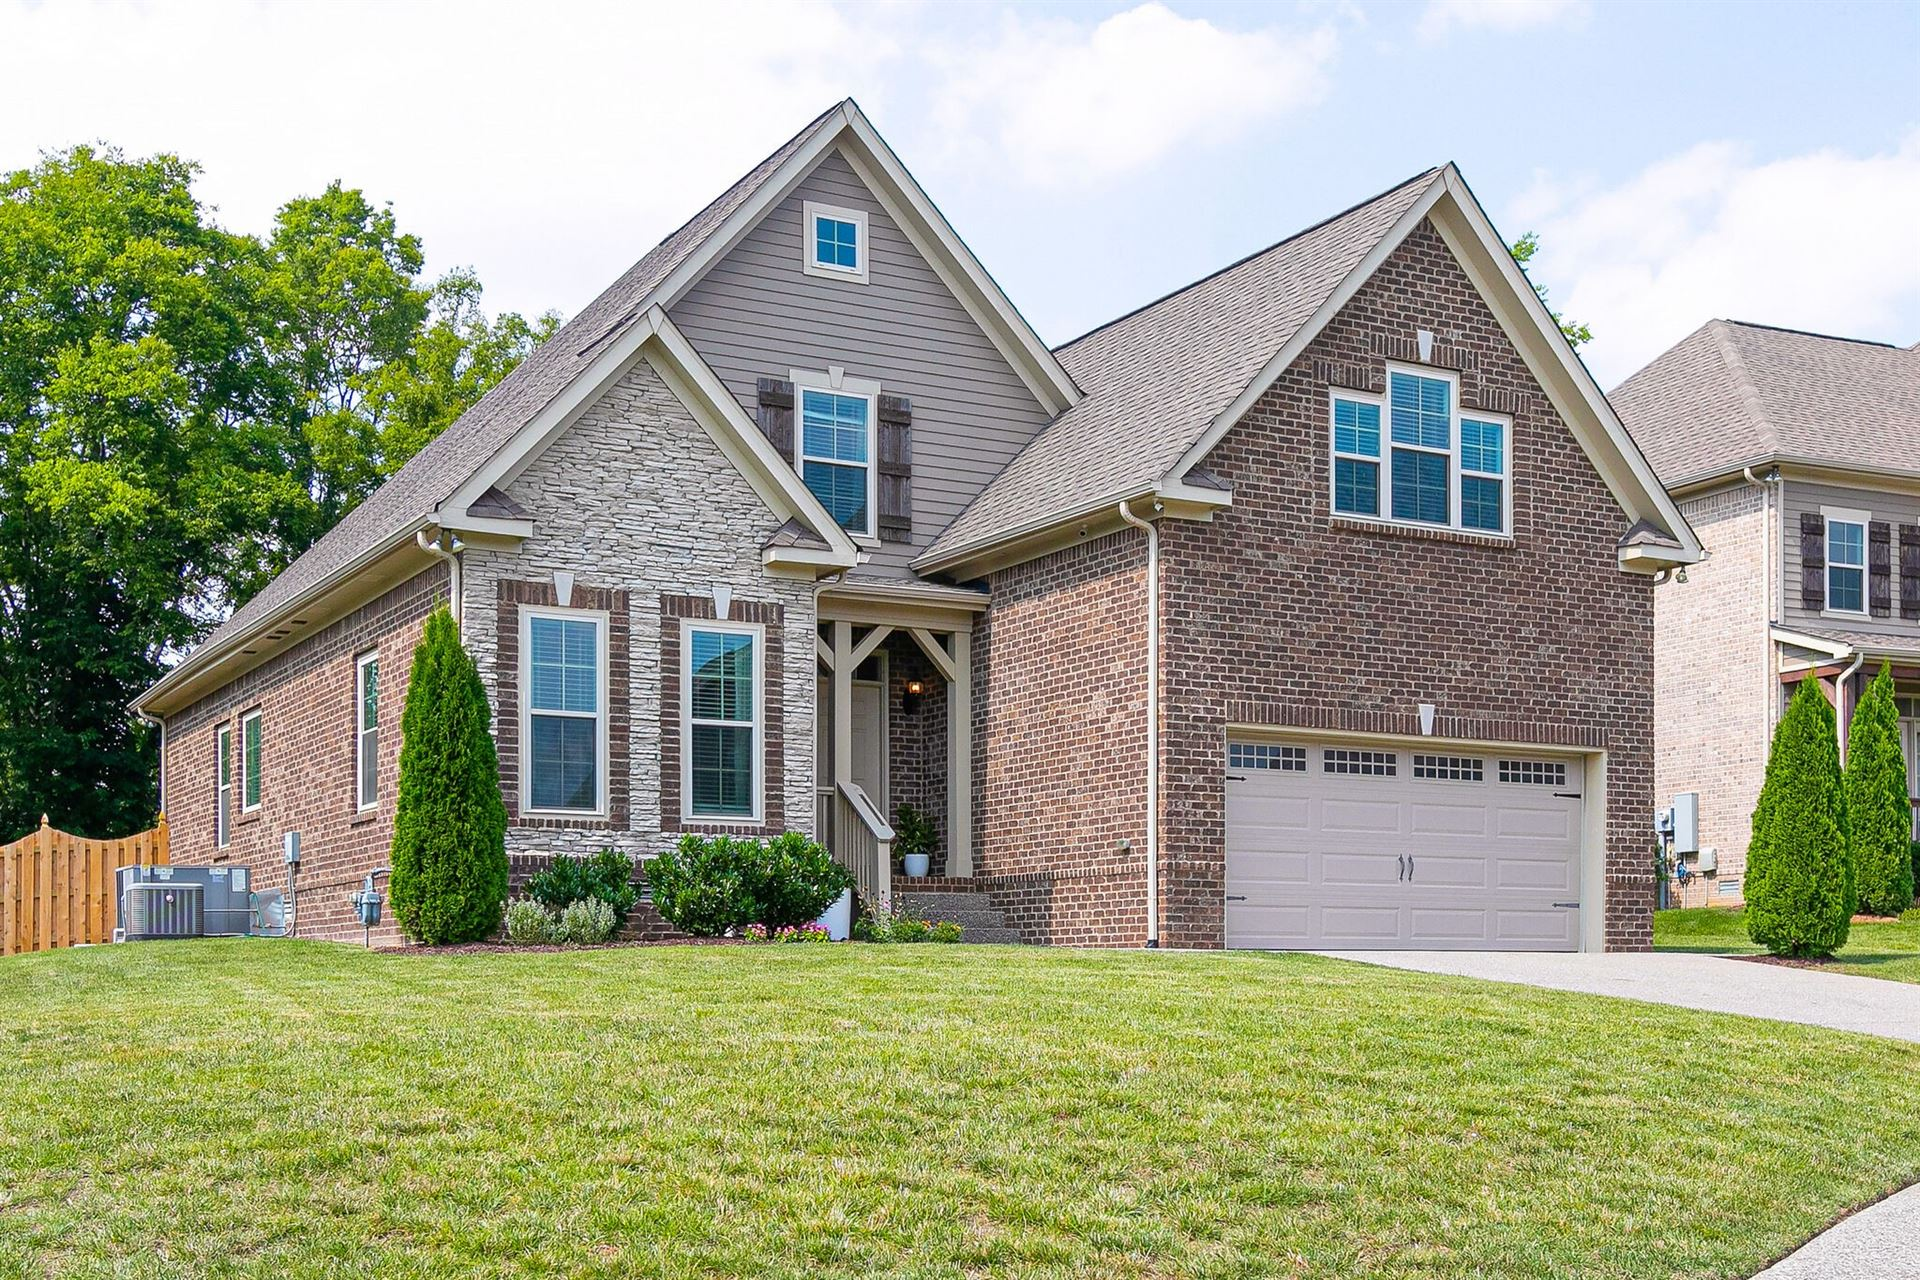 Photo of 3027 Foust Dr, Spring Hill, TN 37174 (MLS # 2275628)